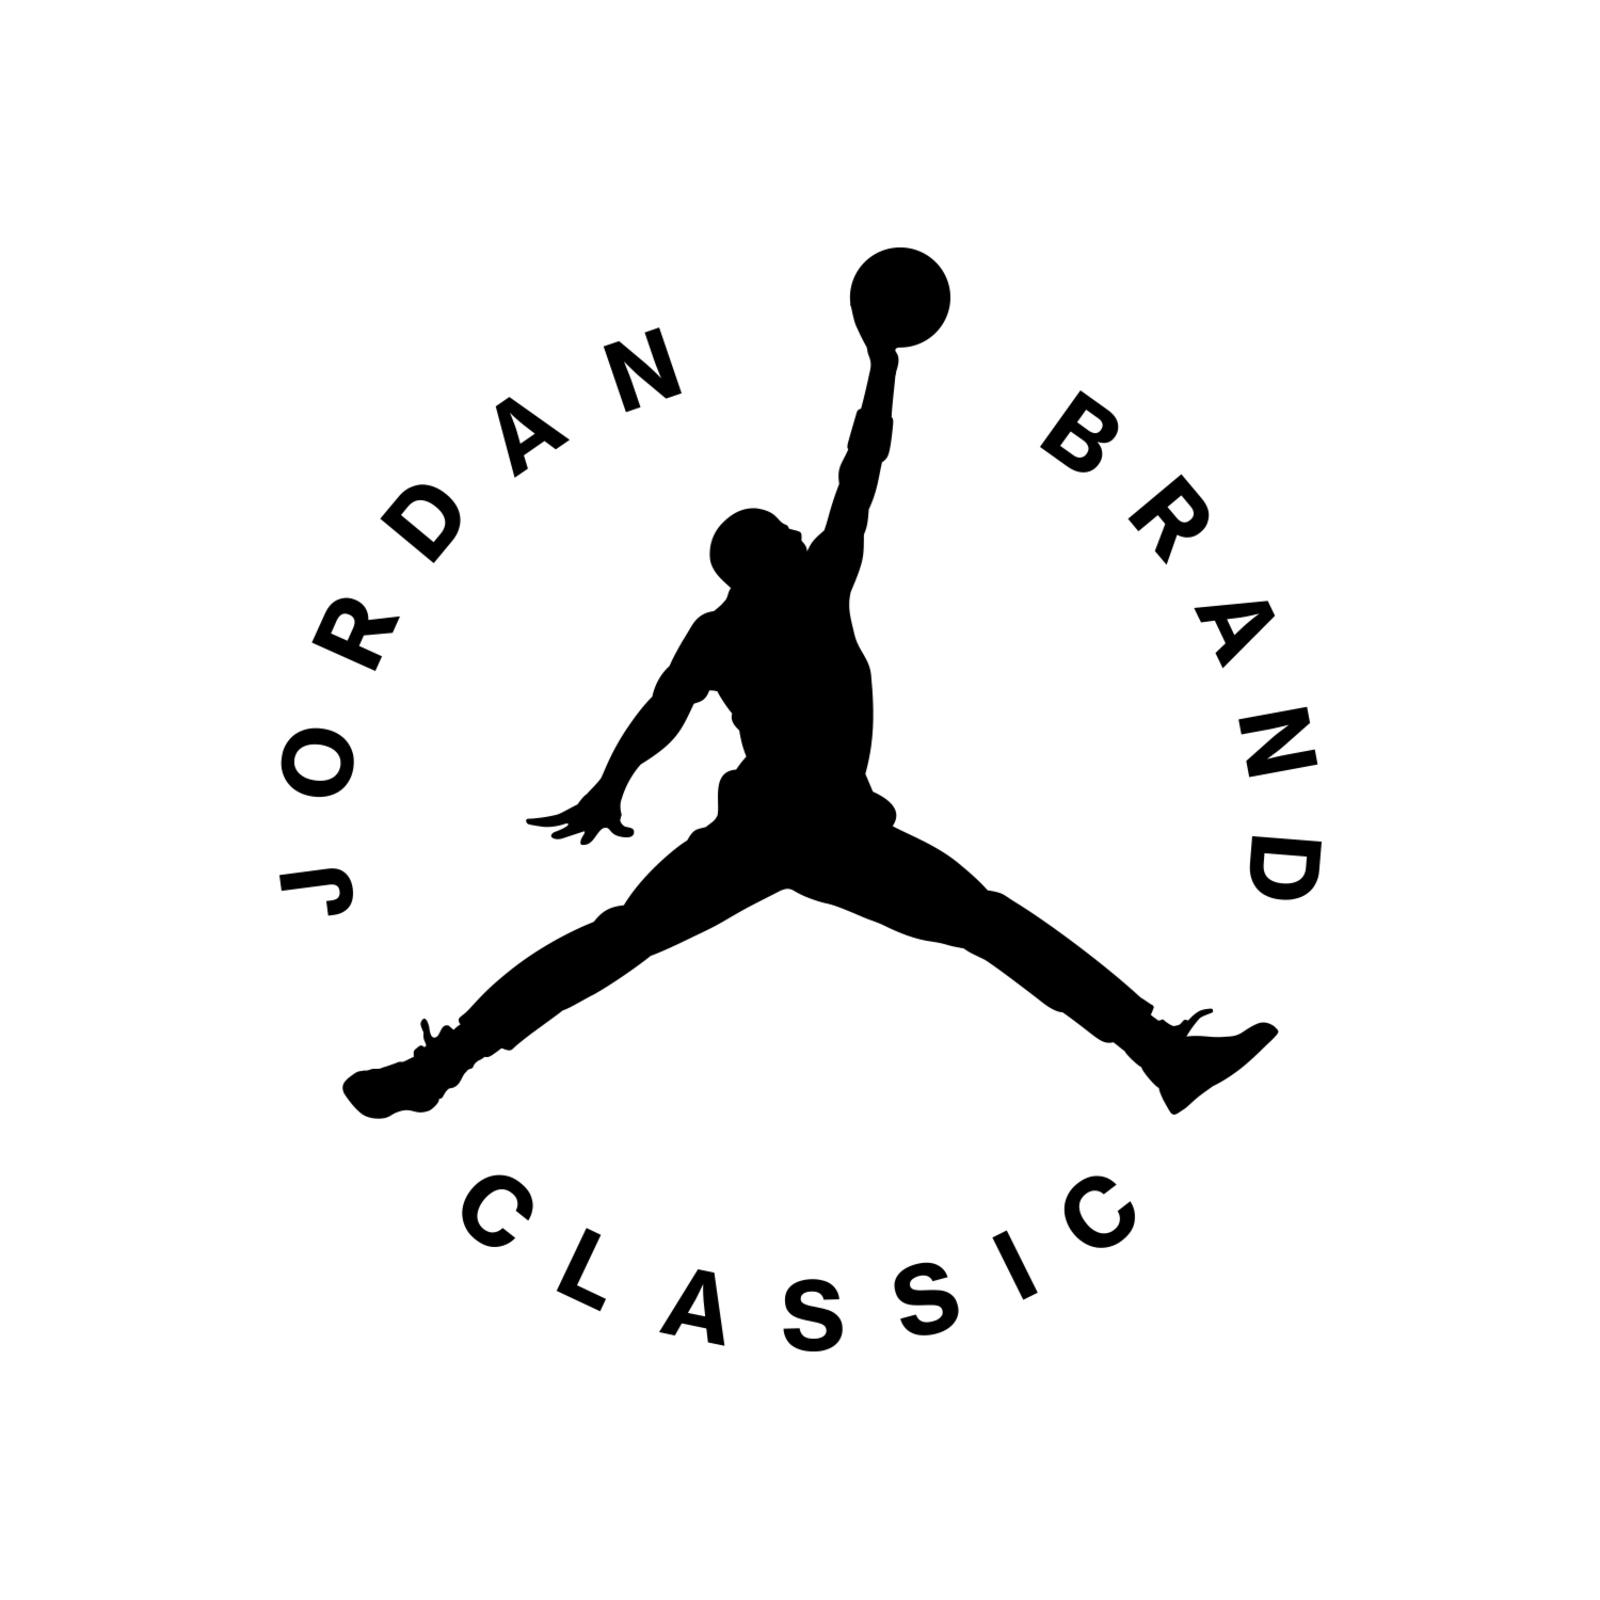 Unknown Basketball Shoe Brands